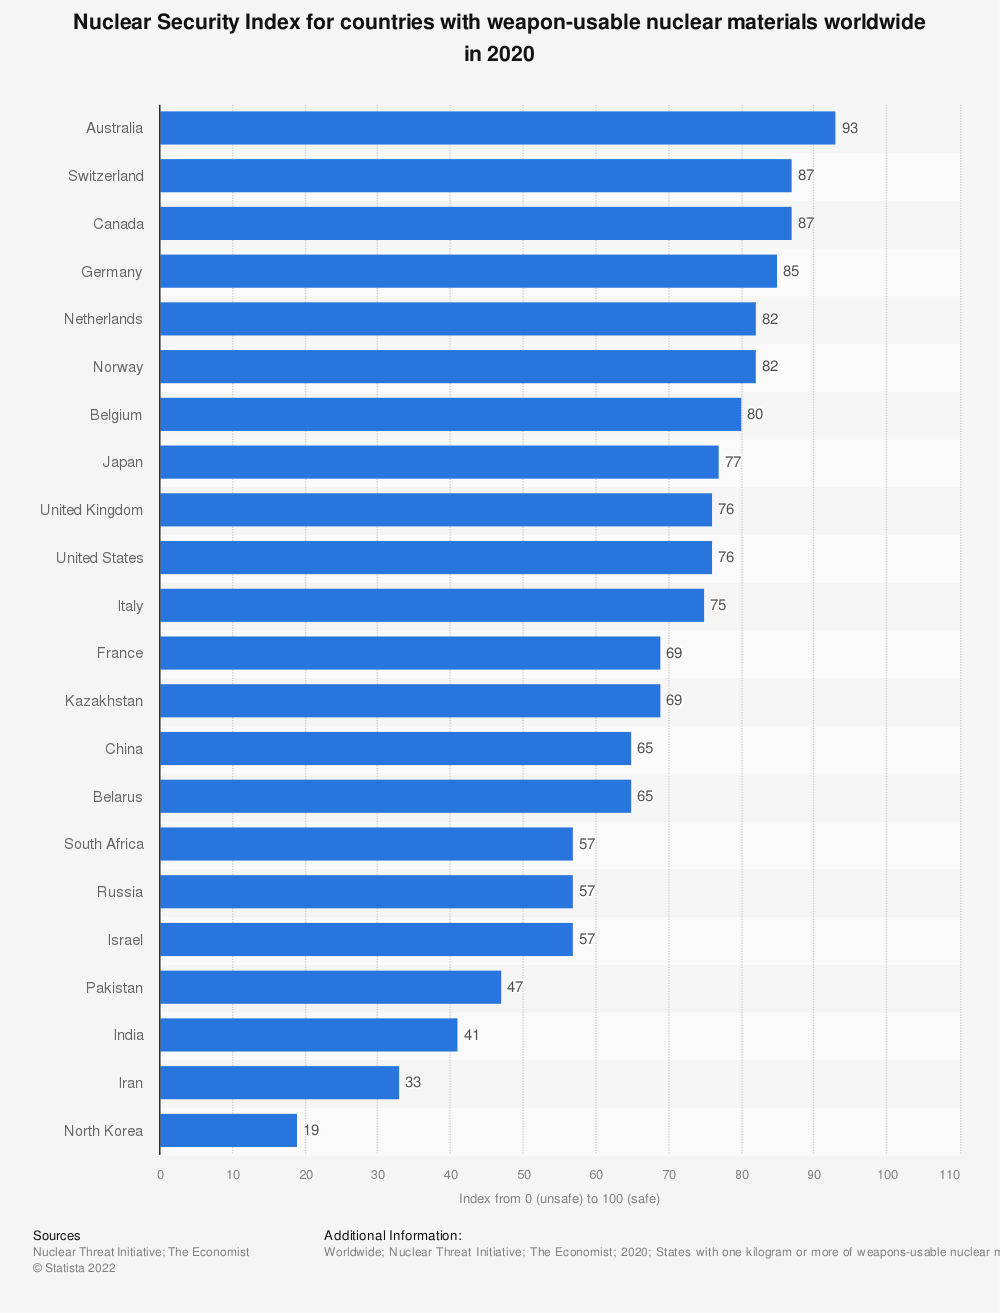 Statistic: Nuclear Security Index for countries with weapon-usable nuclear materials worldwide in 2020 | Statista